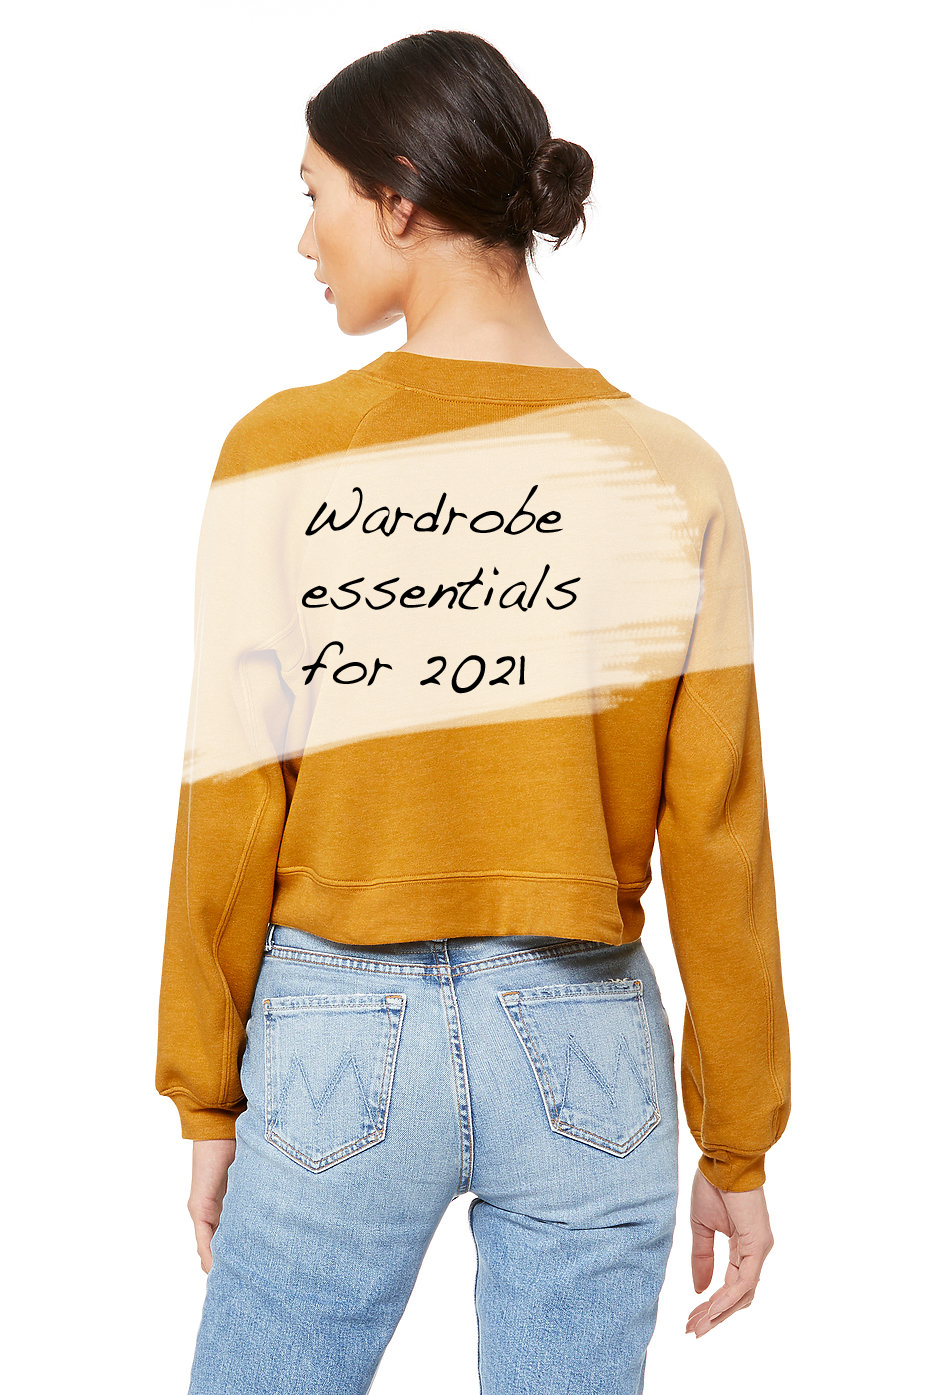 3 Wardrobe Essentials for Ladies in 2021